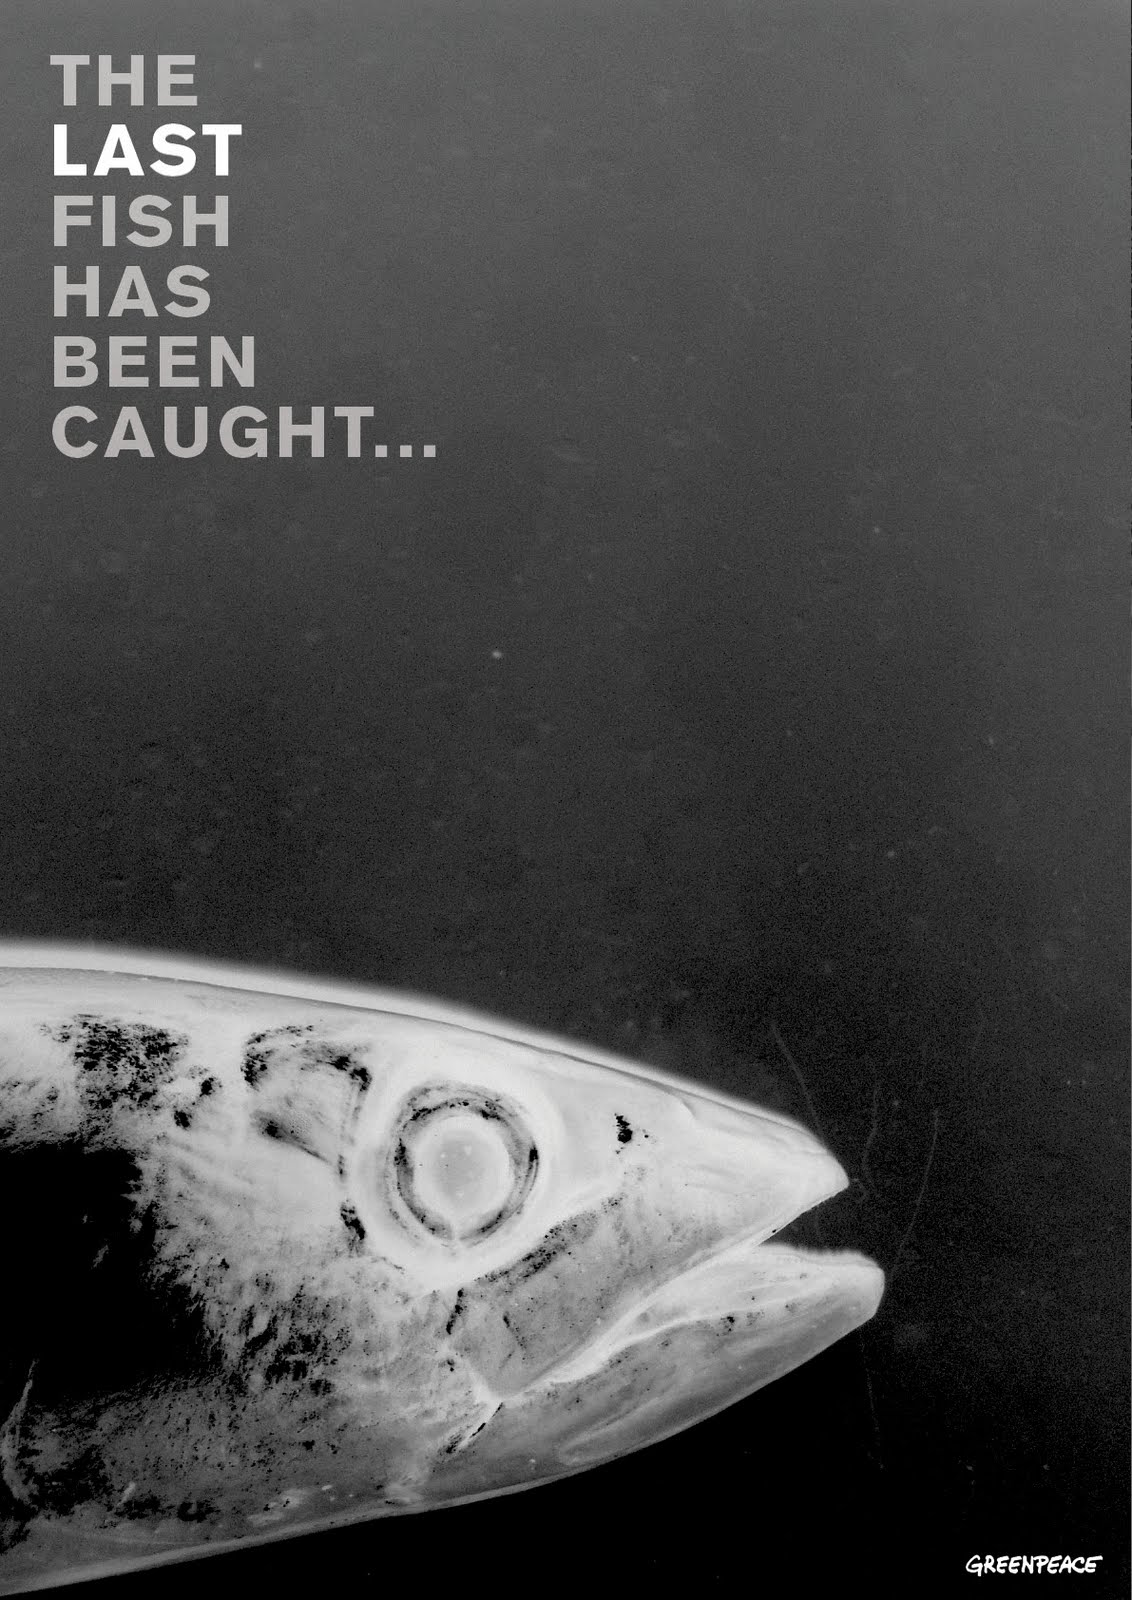 Katherine White awareness poster campaign for greenpeace